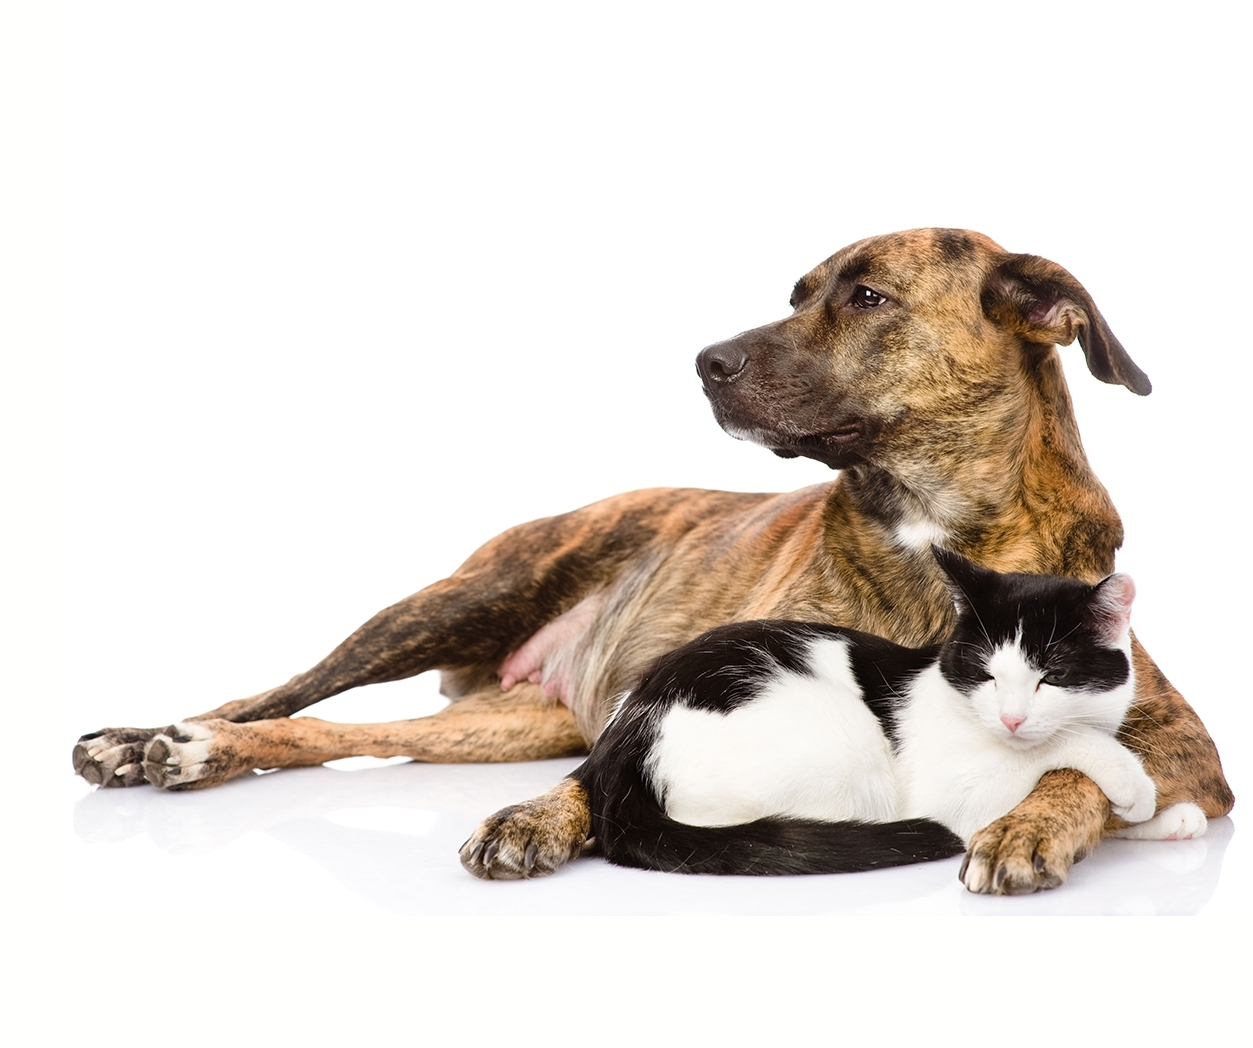 How Massage Benefits Your Pet  Improves mobility and flexibility.  Reduces inflammation. Provides pain relief and muscle relaxation.  Minimizes stress and decreases anxiety. Speeds recovery time from injury or surgery.  Maintains muscle tone and healthy function.  Promotes the body's natural healing process.  Builds confidence and trust.